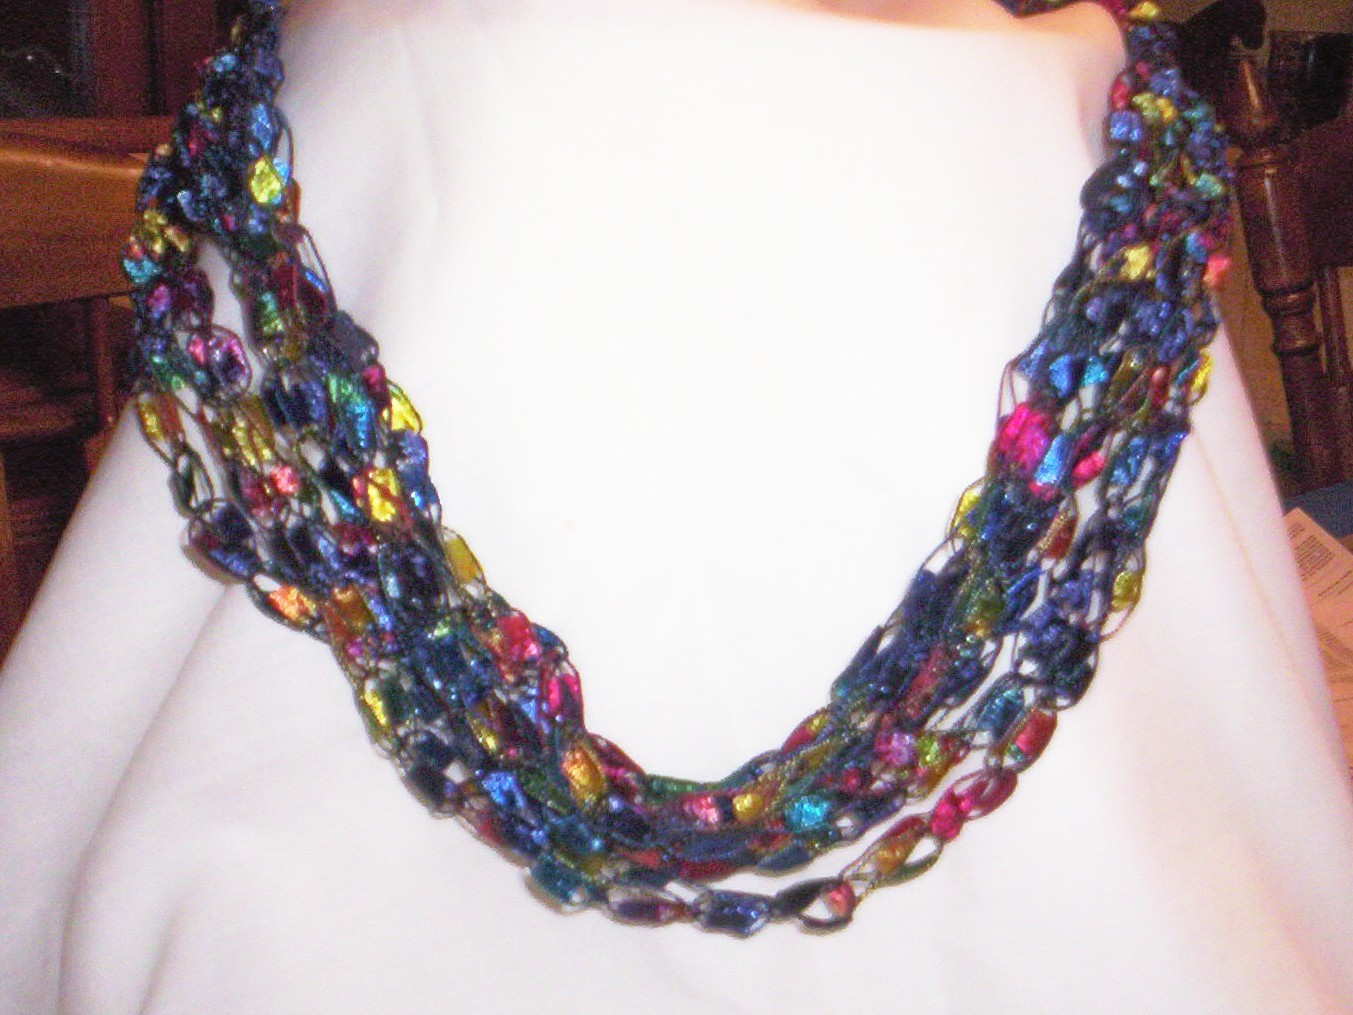 crocheted necklaces from trellis yarn